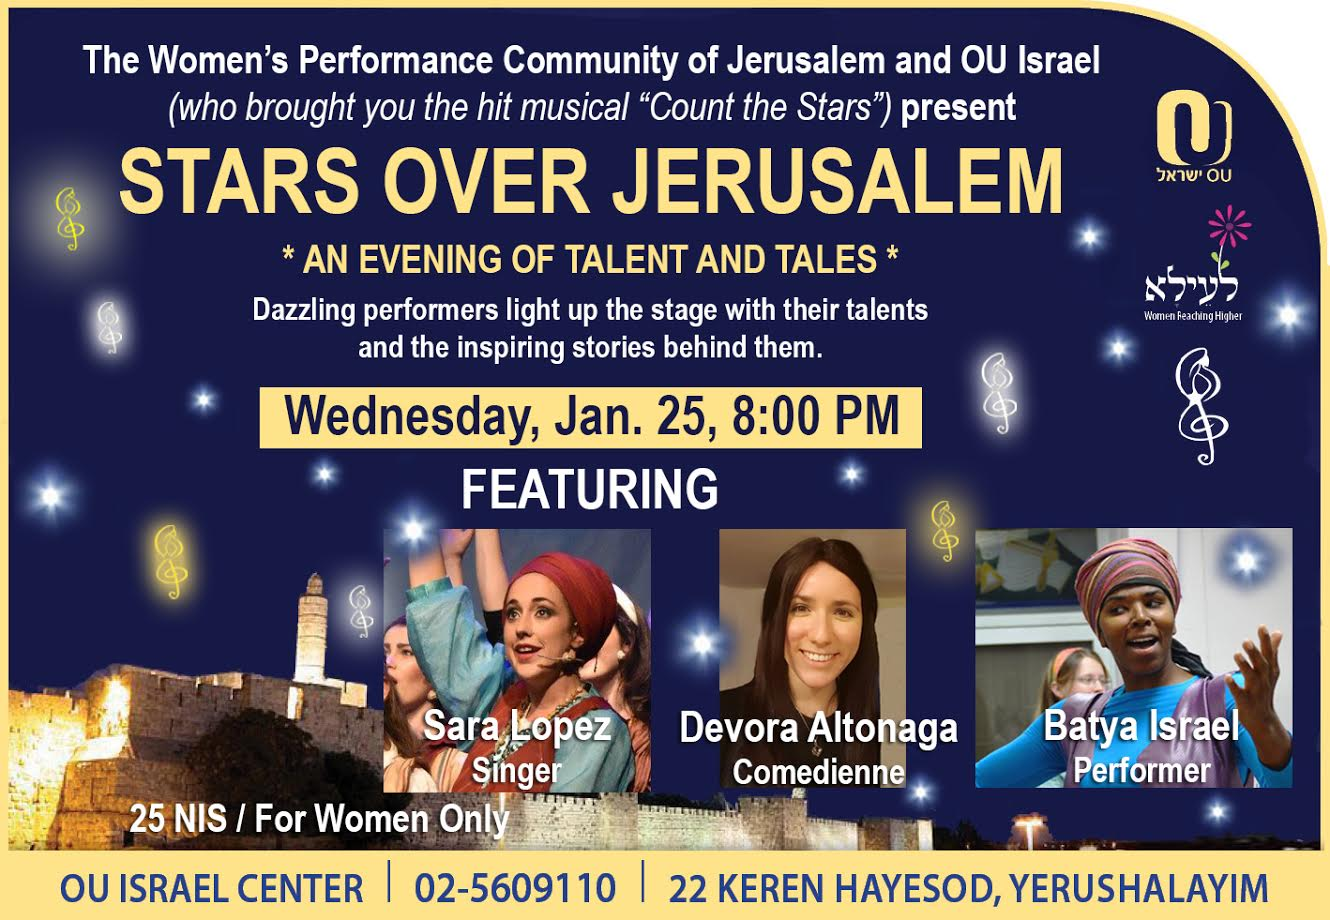 STARS OVER JERUSALEM *An evening of talent and tales for Women